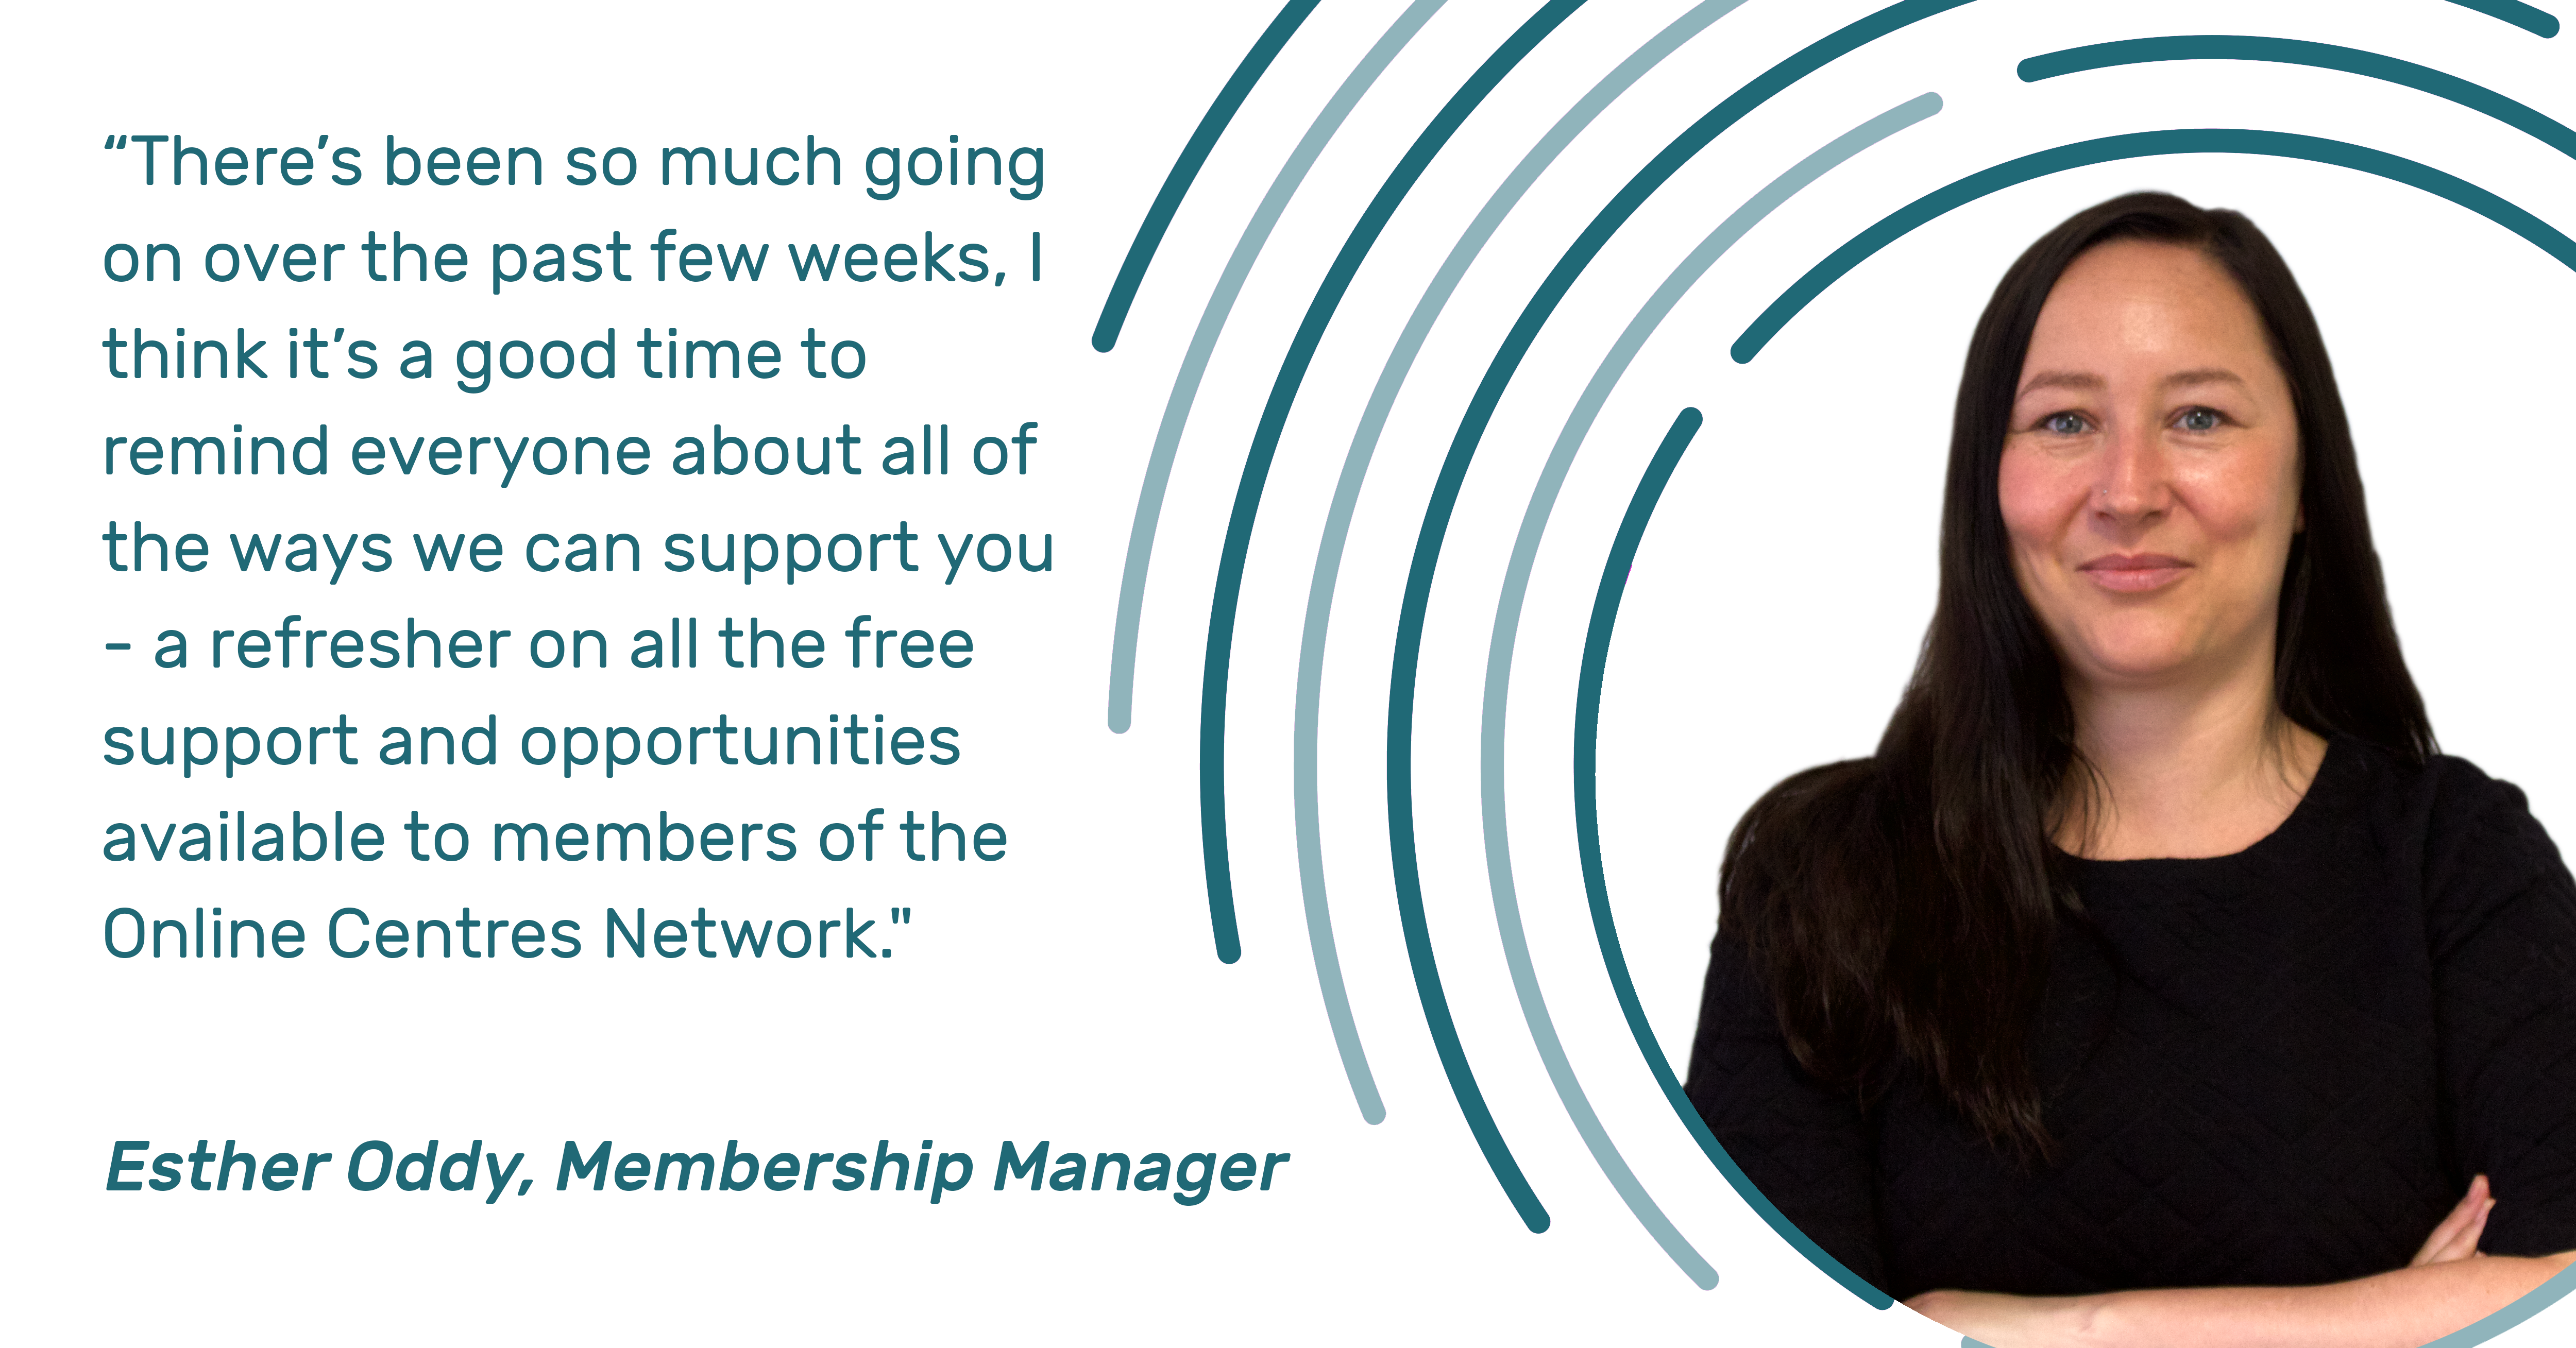 New blog from Good Things Foundation Membership Manager, Esther Oddy